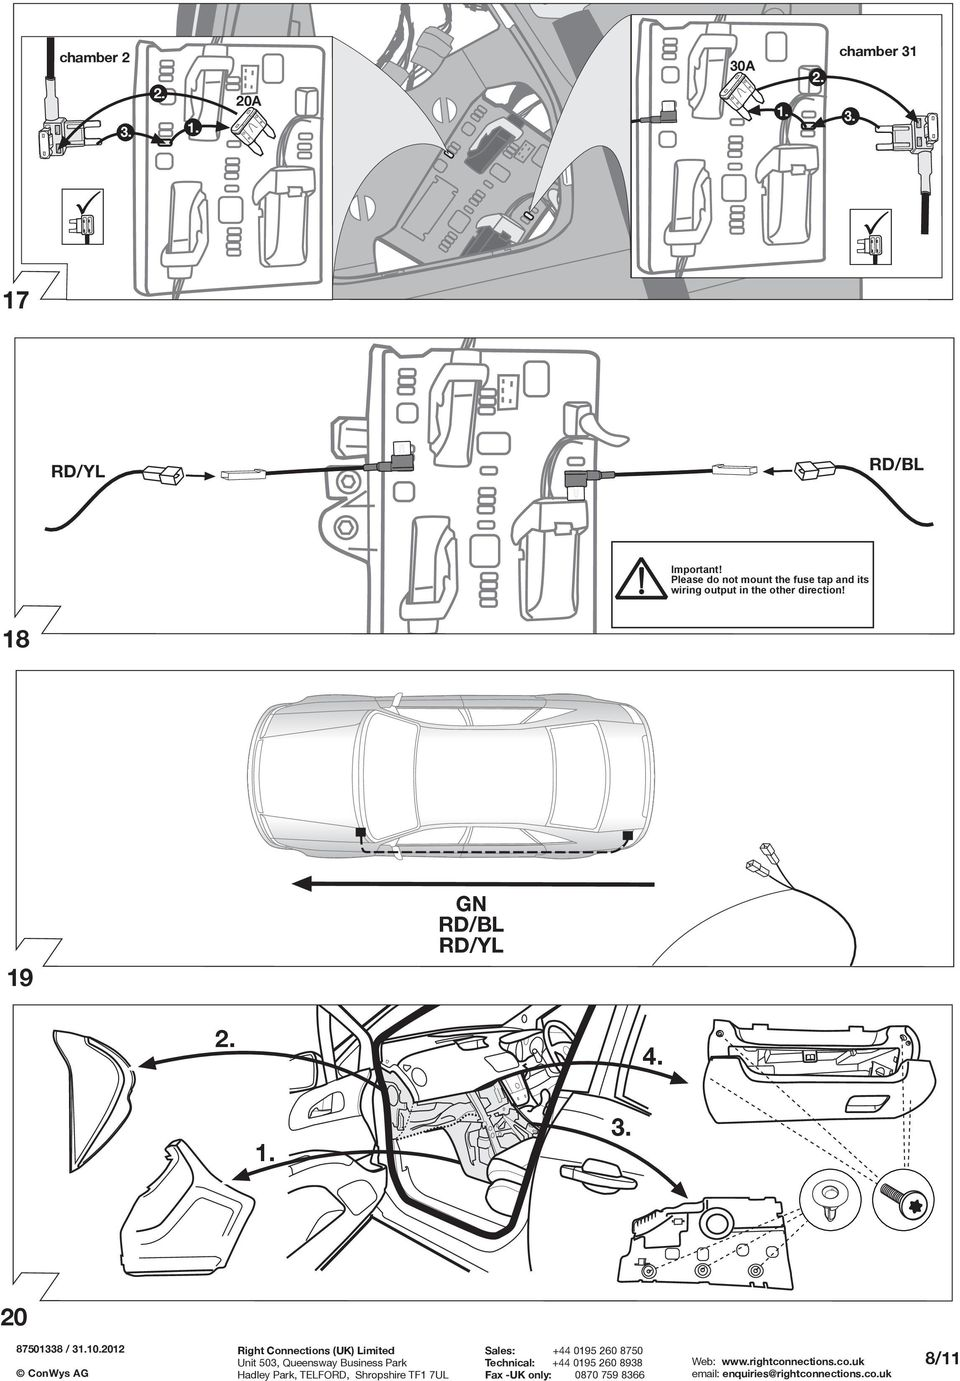 Fitting Instructions Part No Rc Vauxhall Meriva B 06 10 Important Wiring Diagram For 2004 Audi A4 Quattro Together With Towbar Lease Do Not Mount The Fuse Tap And Its